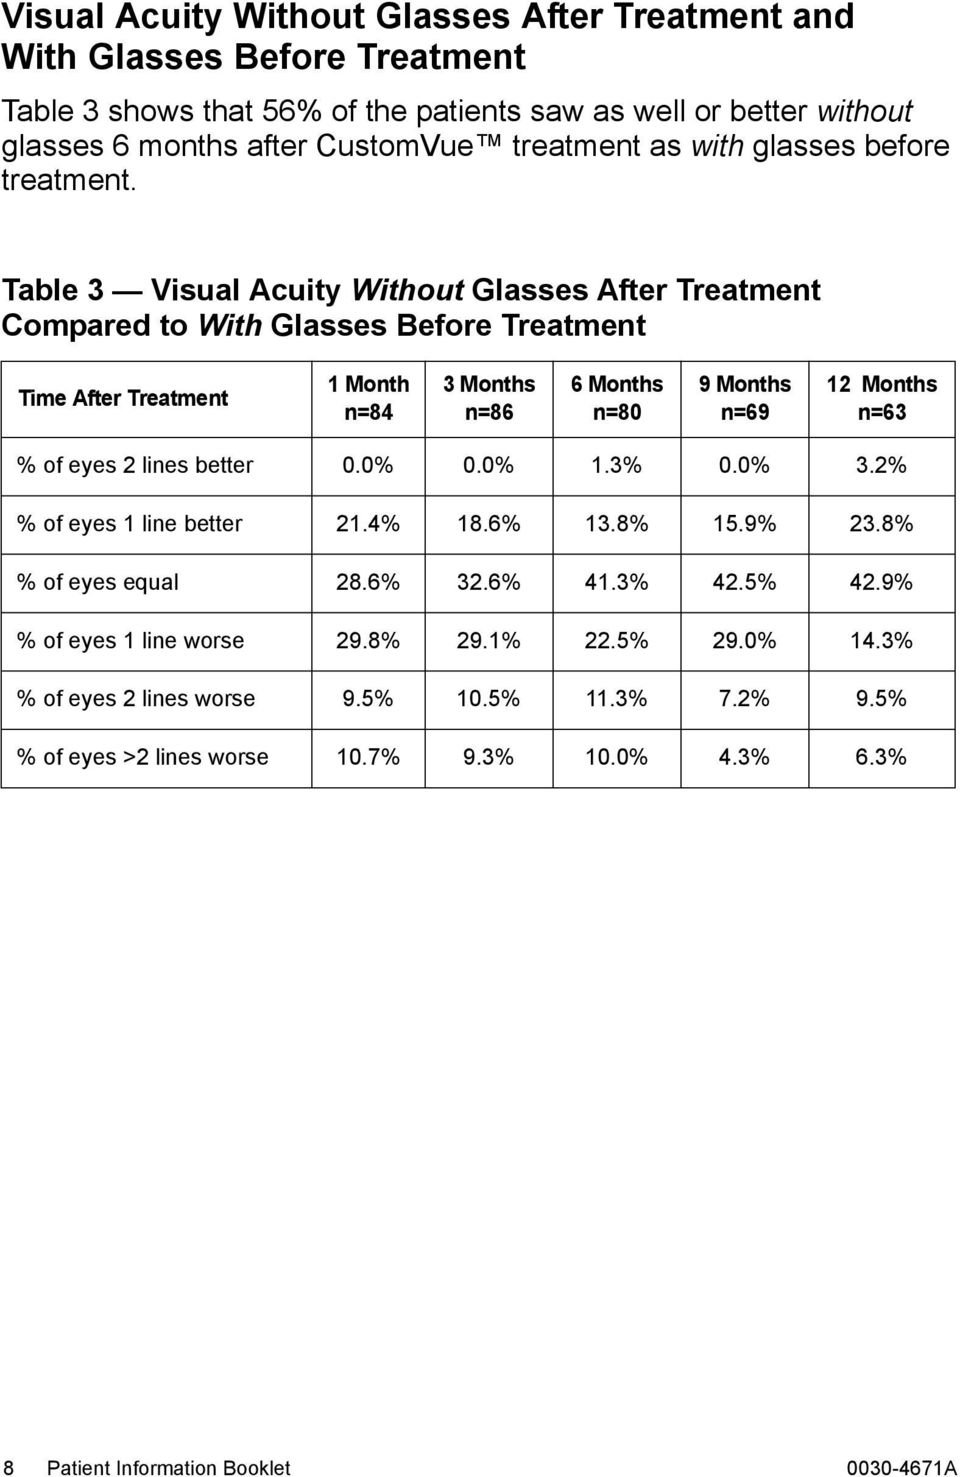 Table 3 Visual Acuity Without Glasses After Treatment Compared to With Glasses Before Treatment Time After Treatment 1 Month n=84 3 Months n=86 6 Months n=80 9 Months n=69 12 Months n=63 %